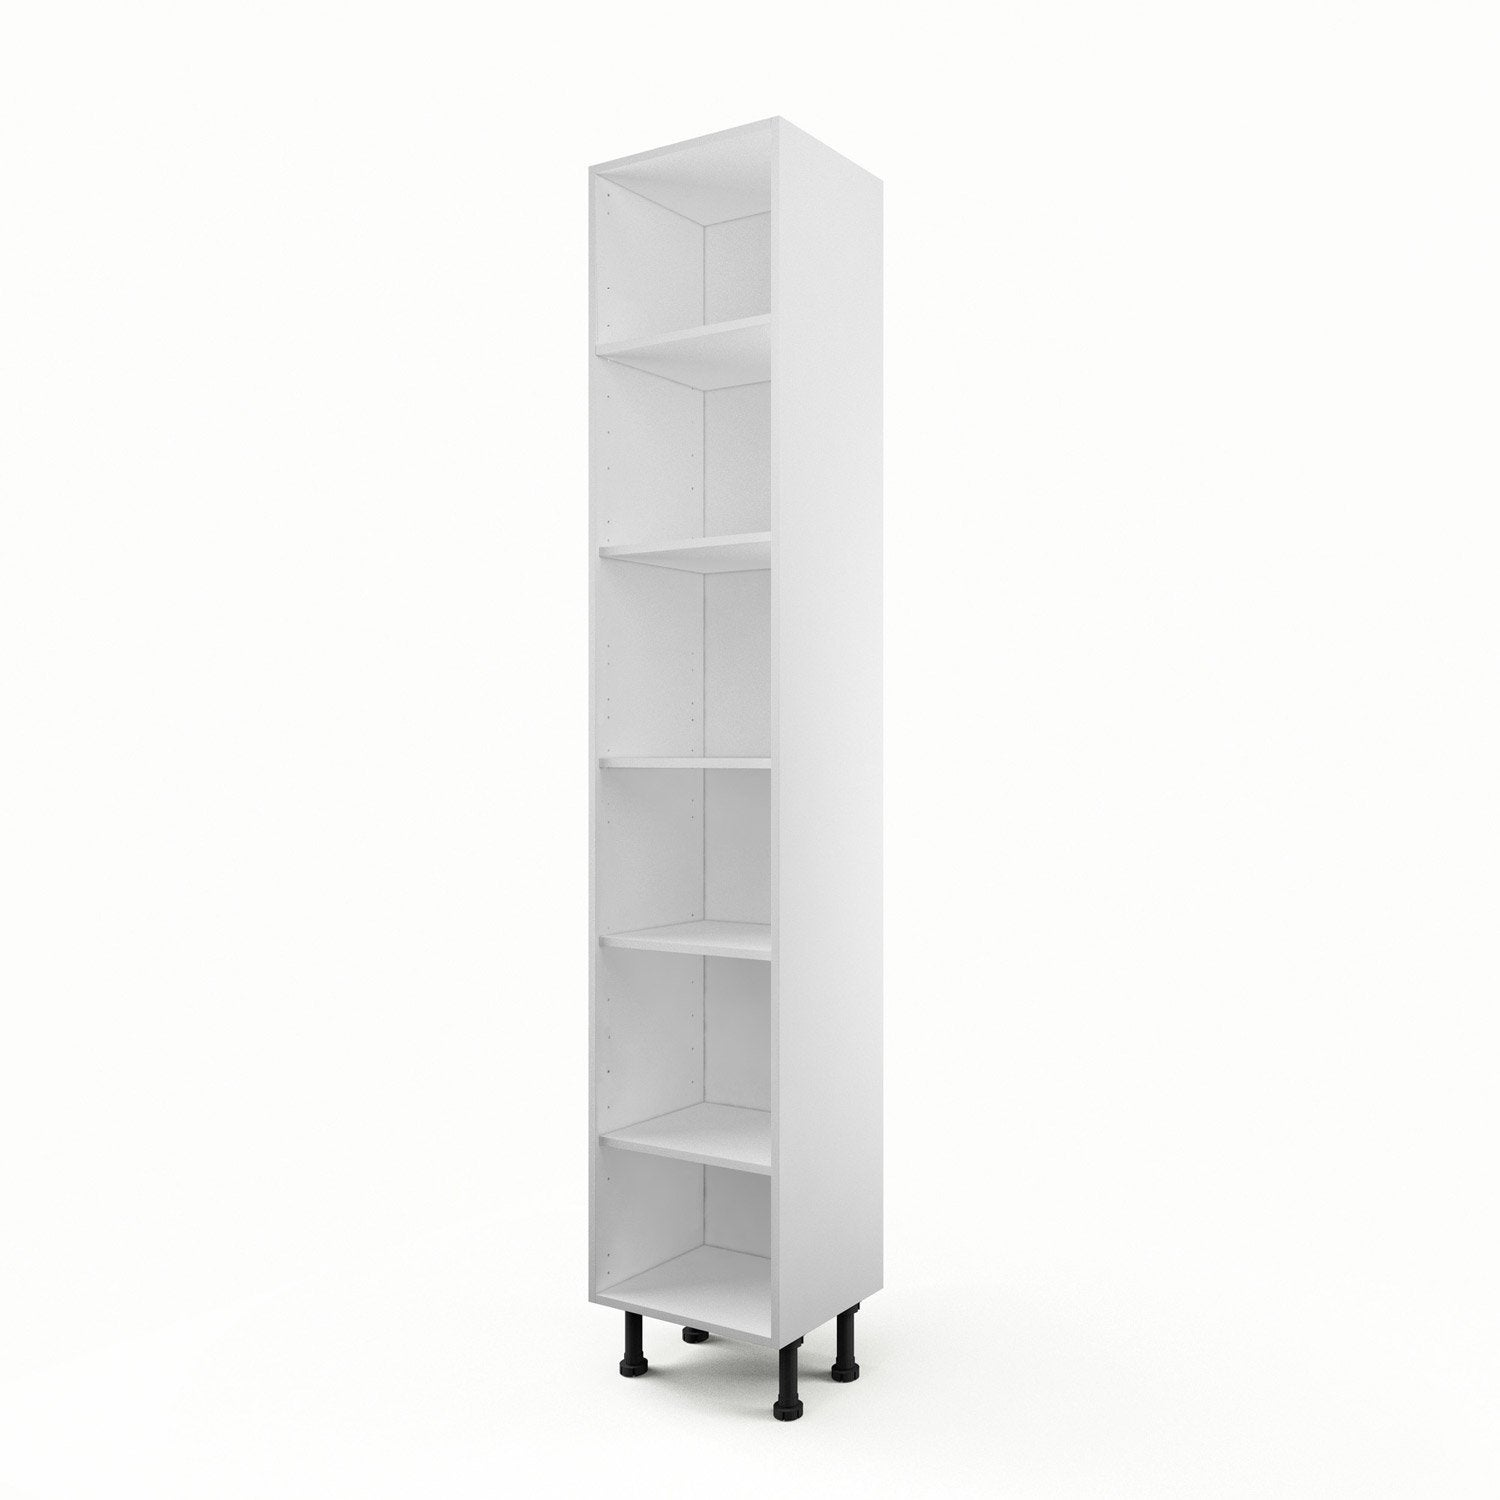 caisson de cuisine armoire a40 delinia blanc x x cm leroy merlin. Black Bedroom Furniture Sets. Home Design Ideas